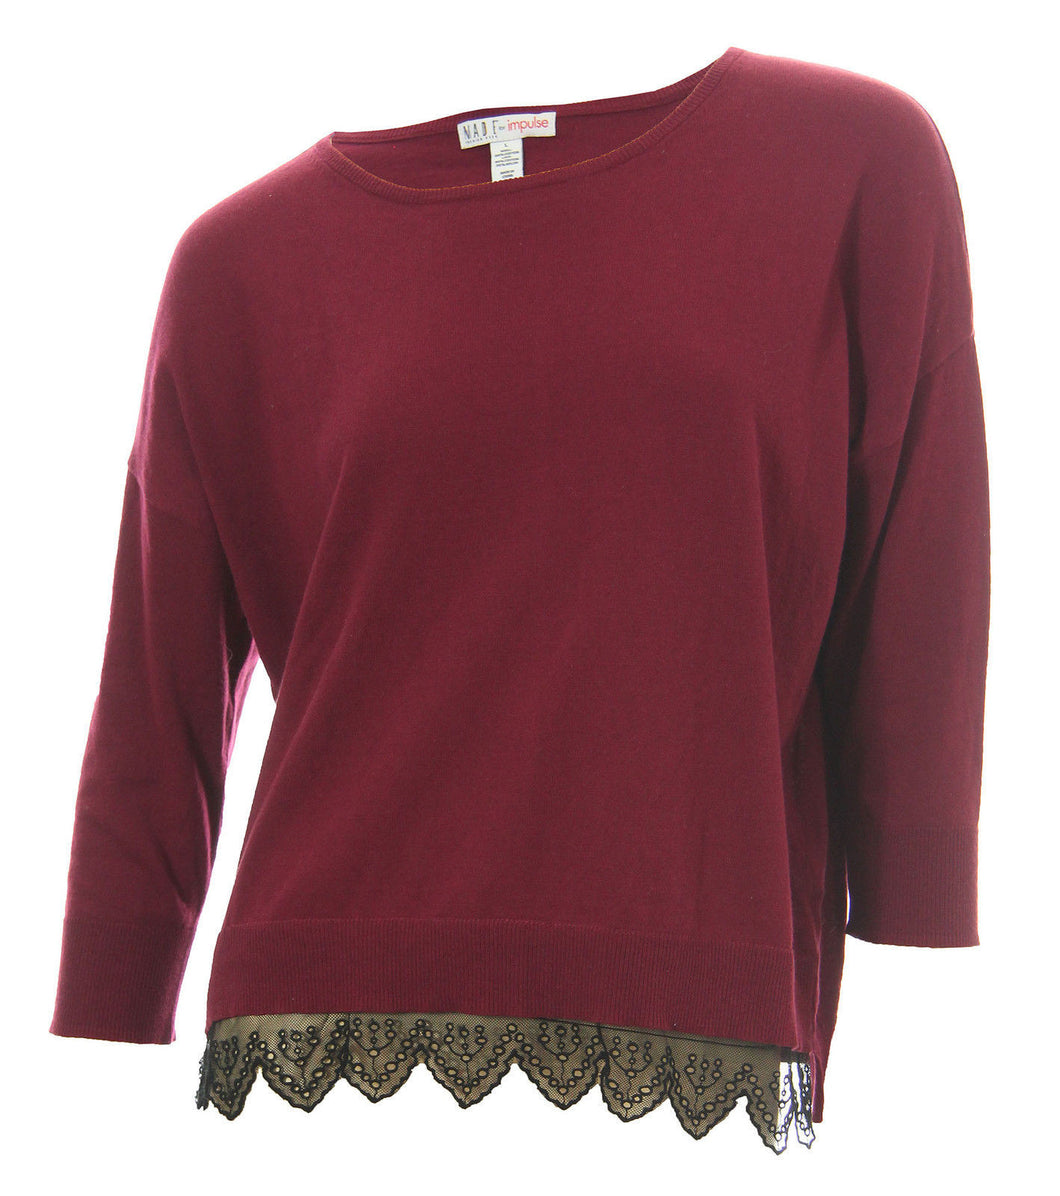 Made for Impulse Burgundy Long Sleeve Black Lace Trim Knit Top